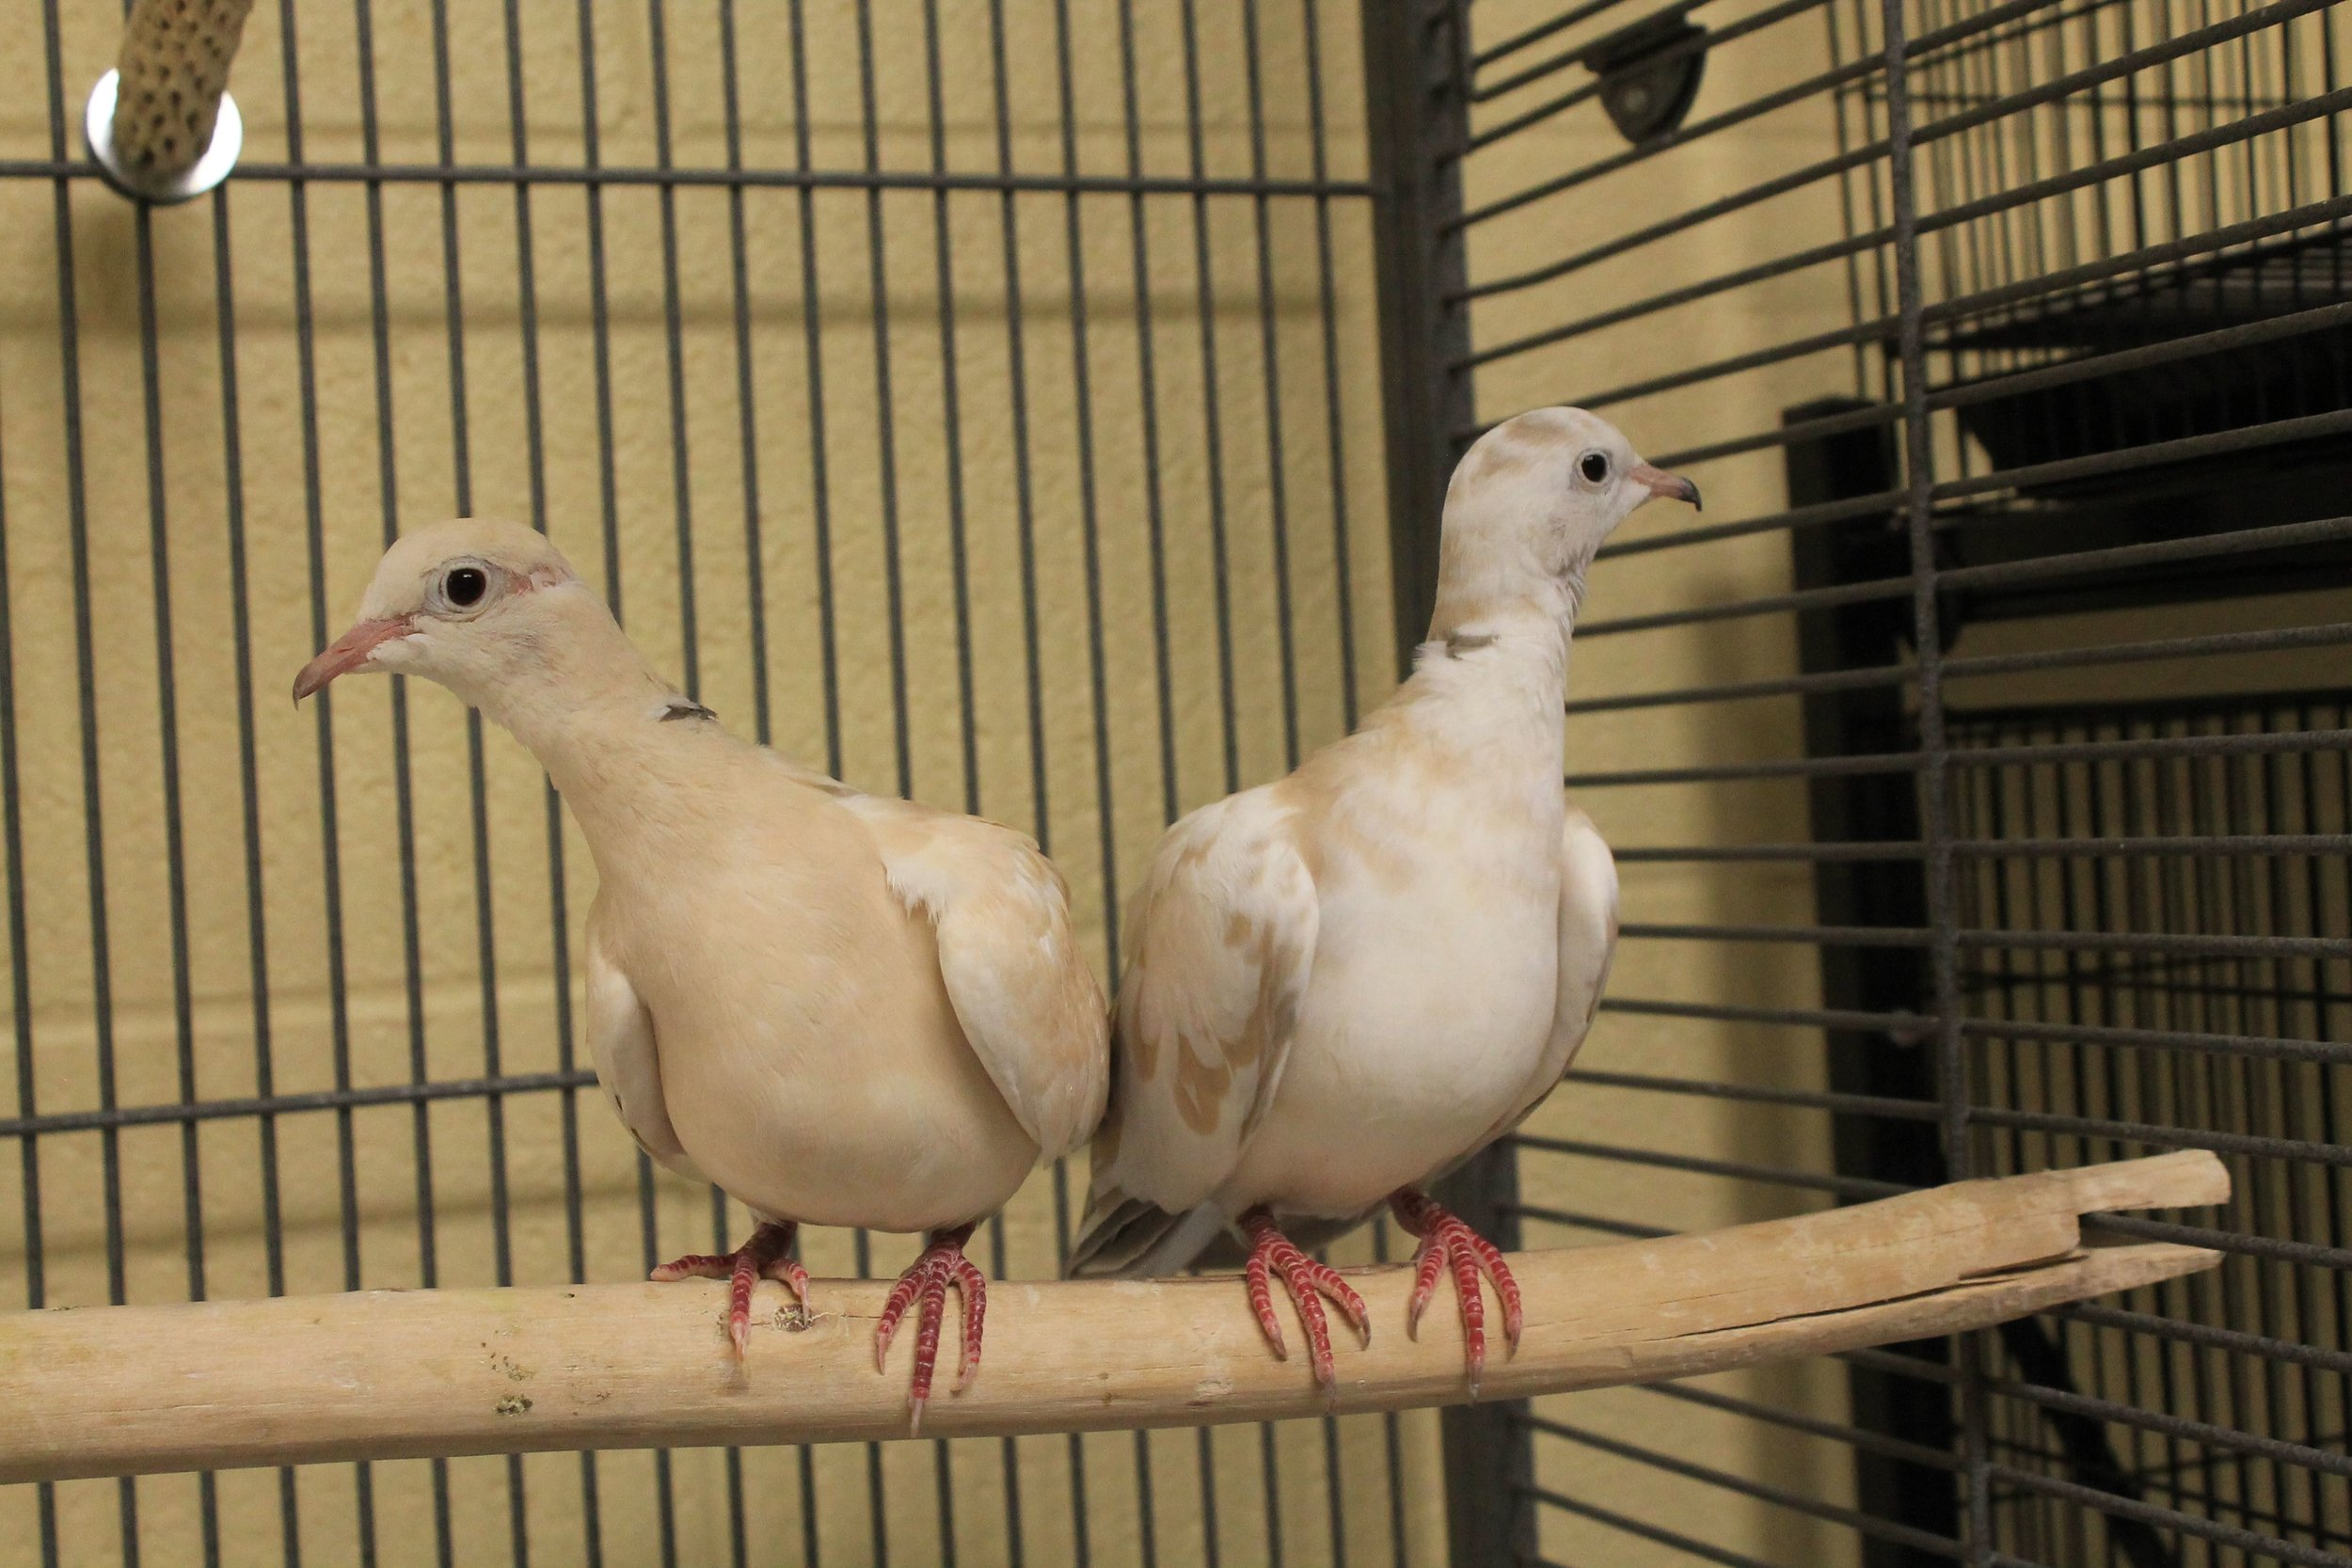 Angel and Sweetie are a pair of very gentle and peaceful Ring-neck Doves. They are quite easily handled and are very gentle and peaceful birds. They are not loud, and make gentle cooing and funny laughing sounds. Don't forget about our FREE Avian Extravaganza, held at HAWS on 9/11/16 from 1-4pm!